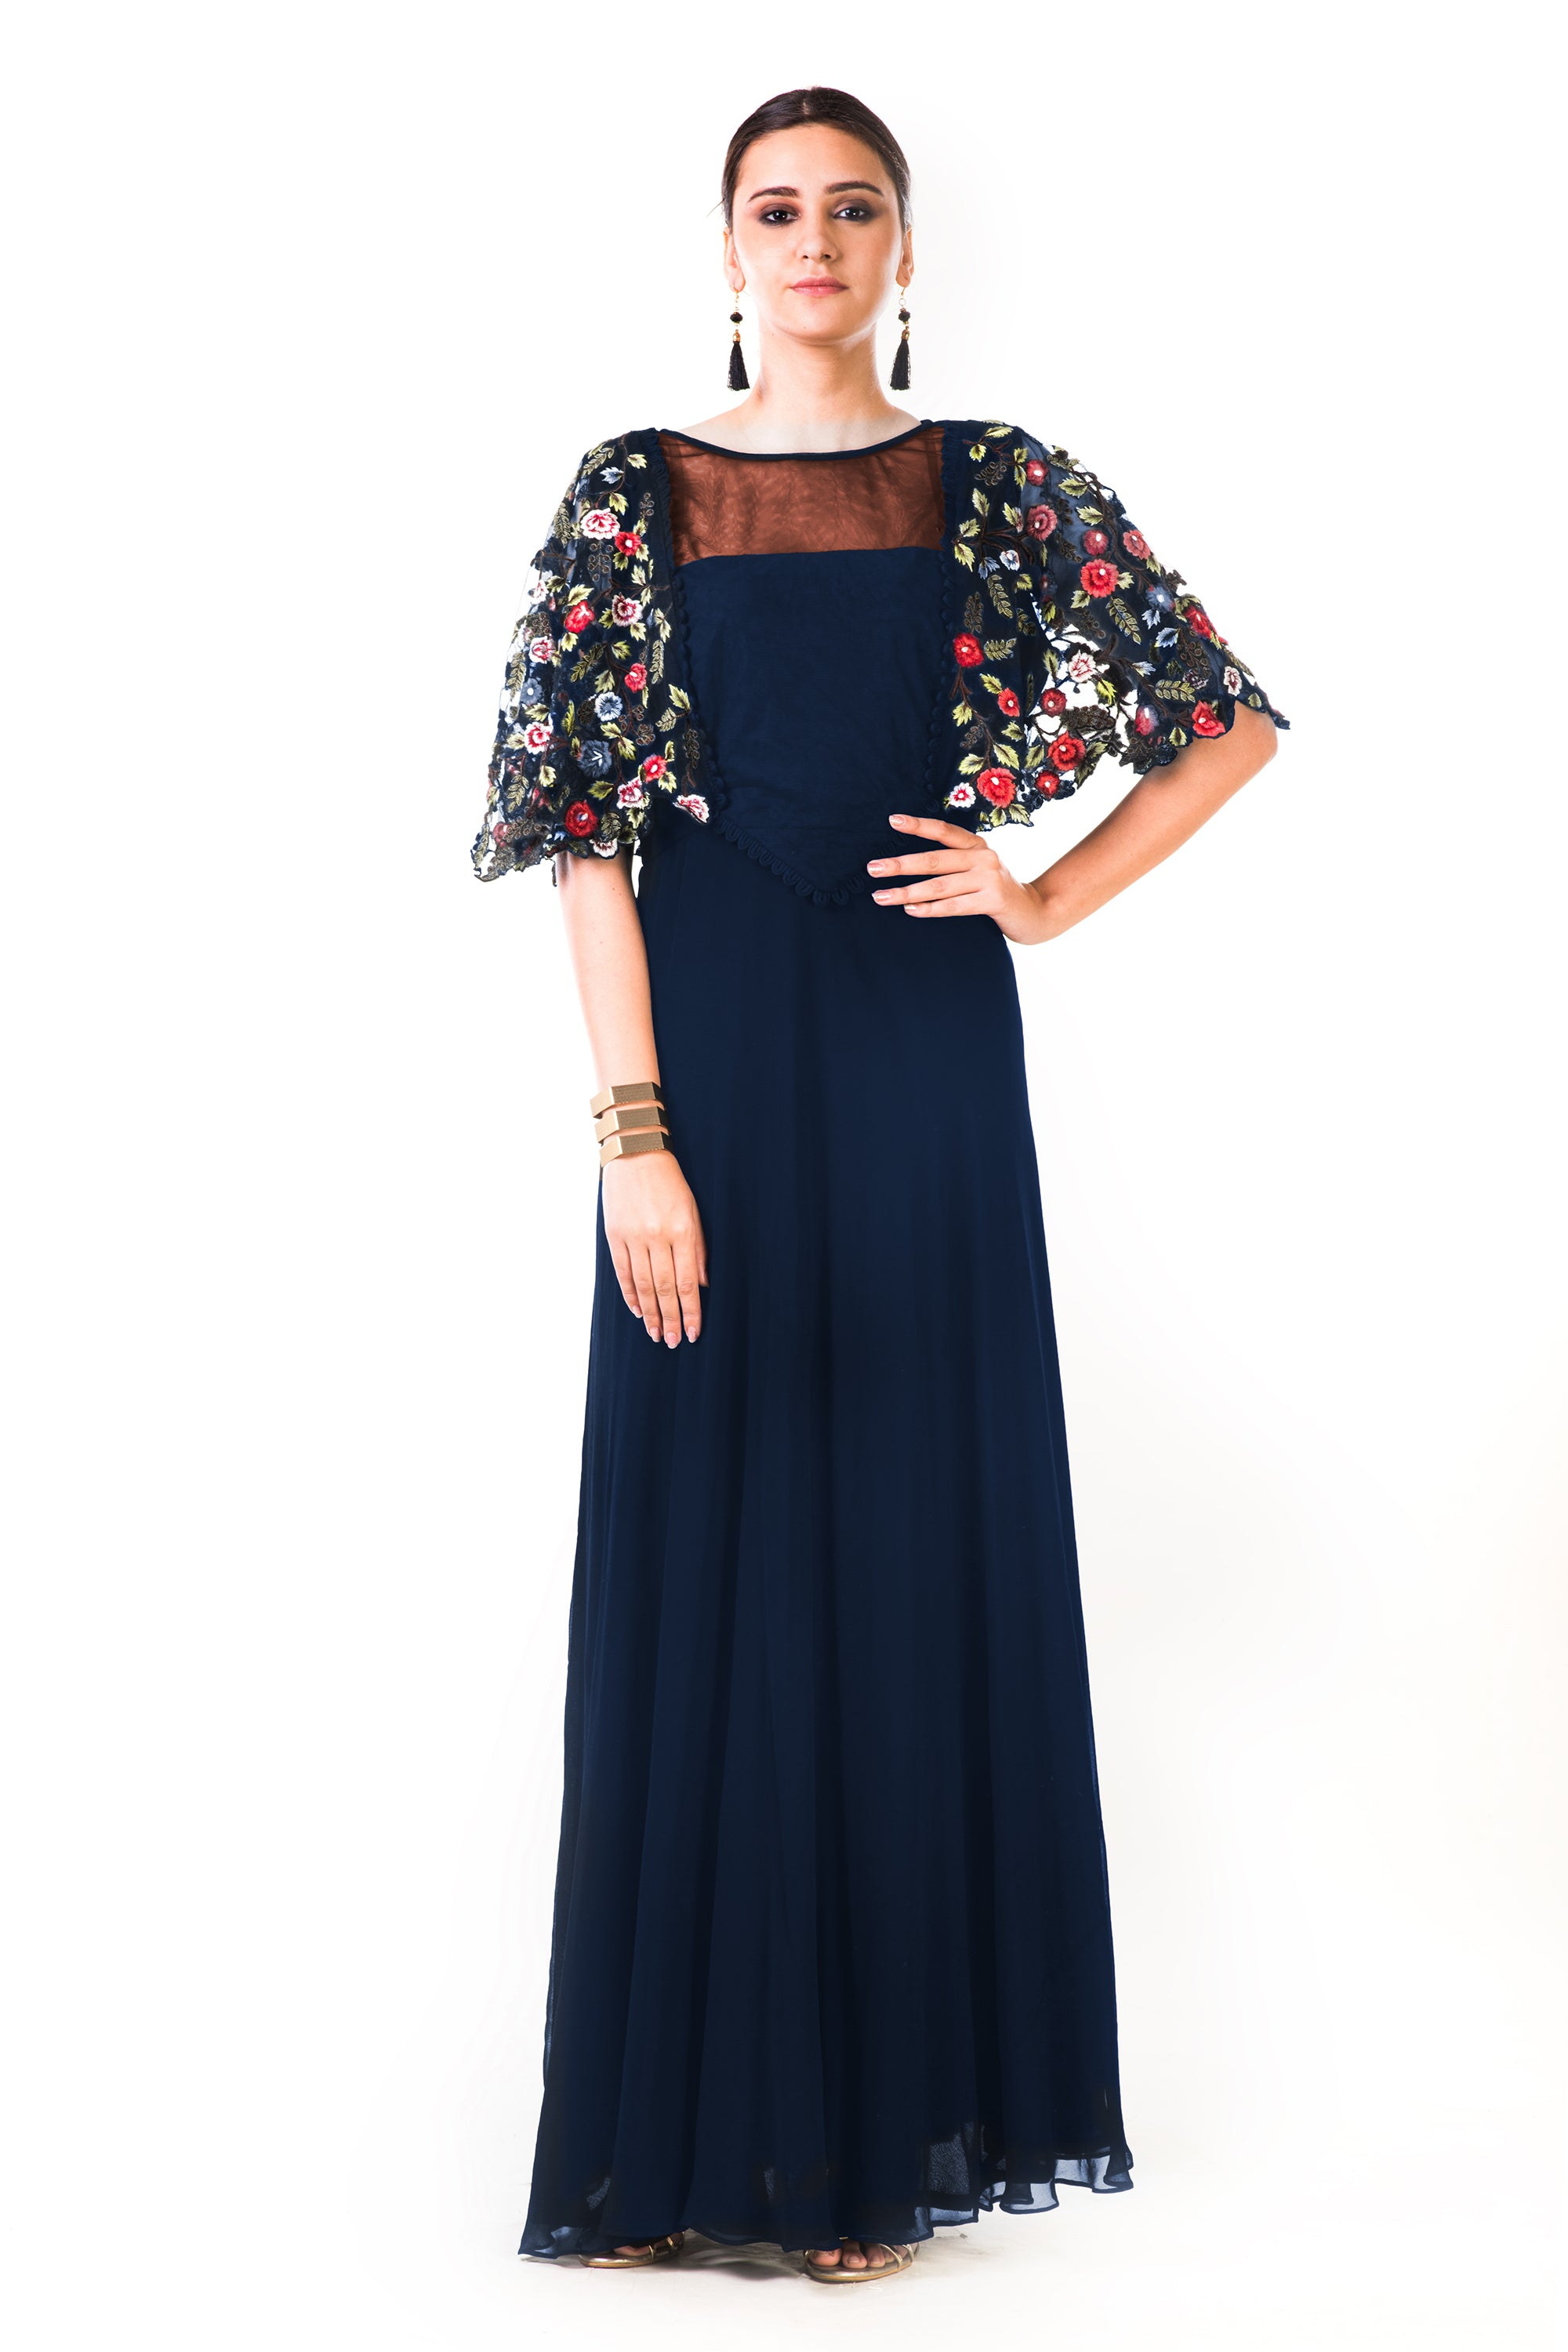 Midnight Blue Hand Embroidered Cape Style Gown | VIVA-LUXE